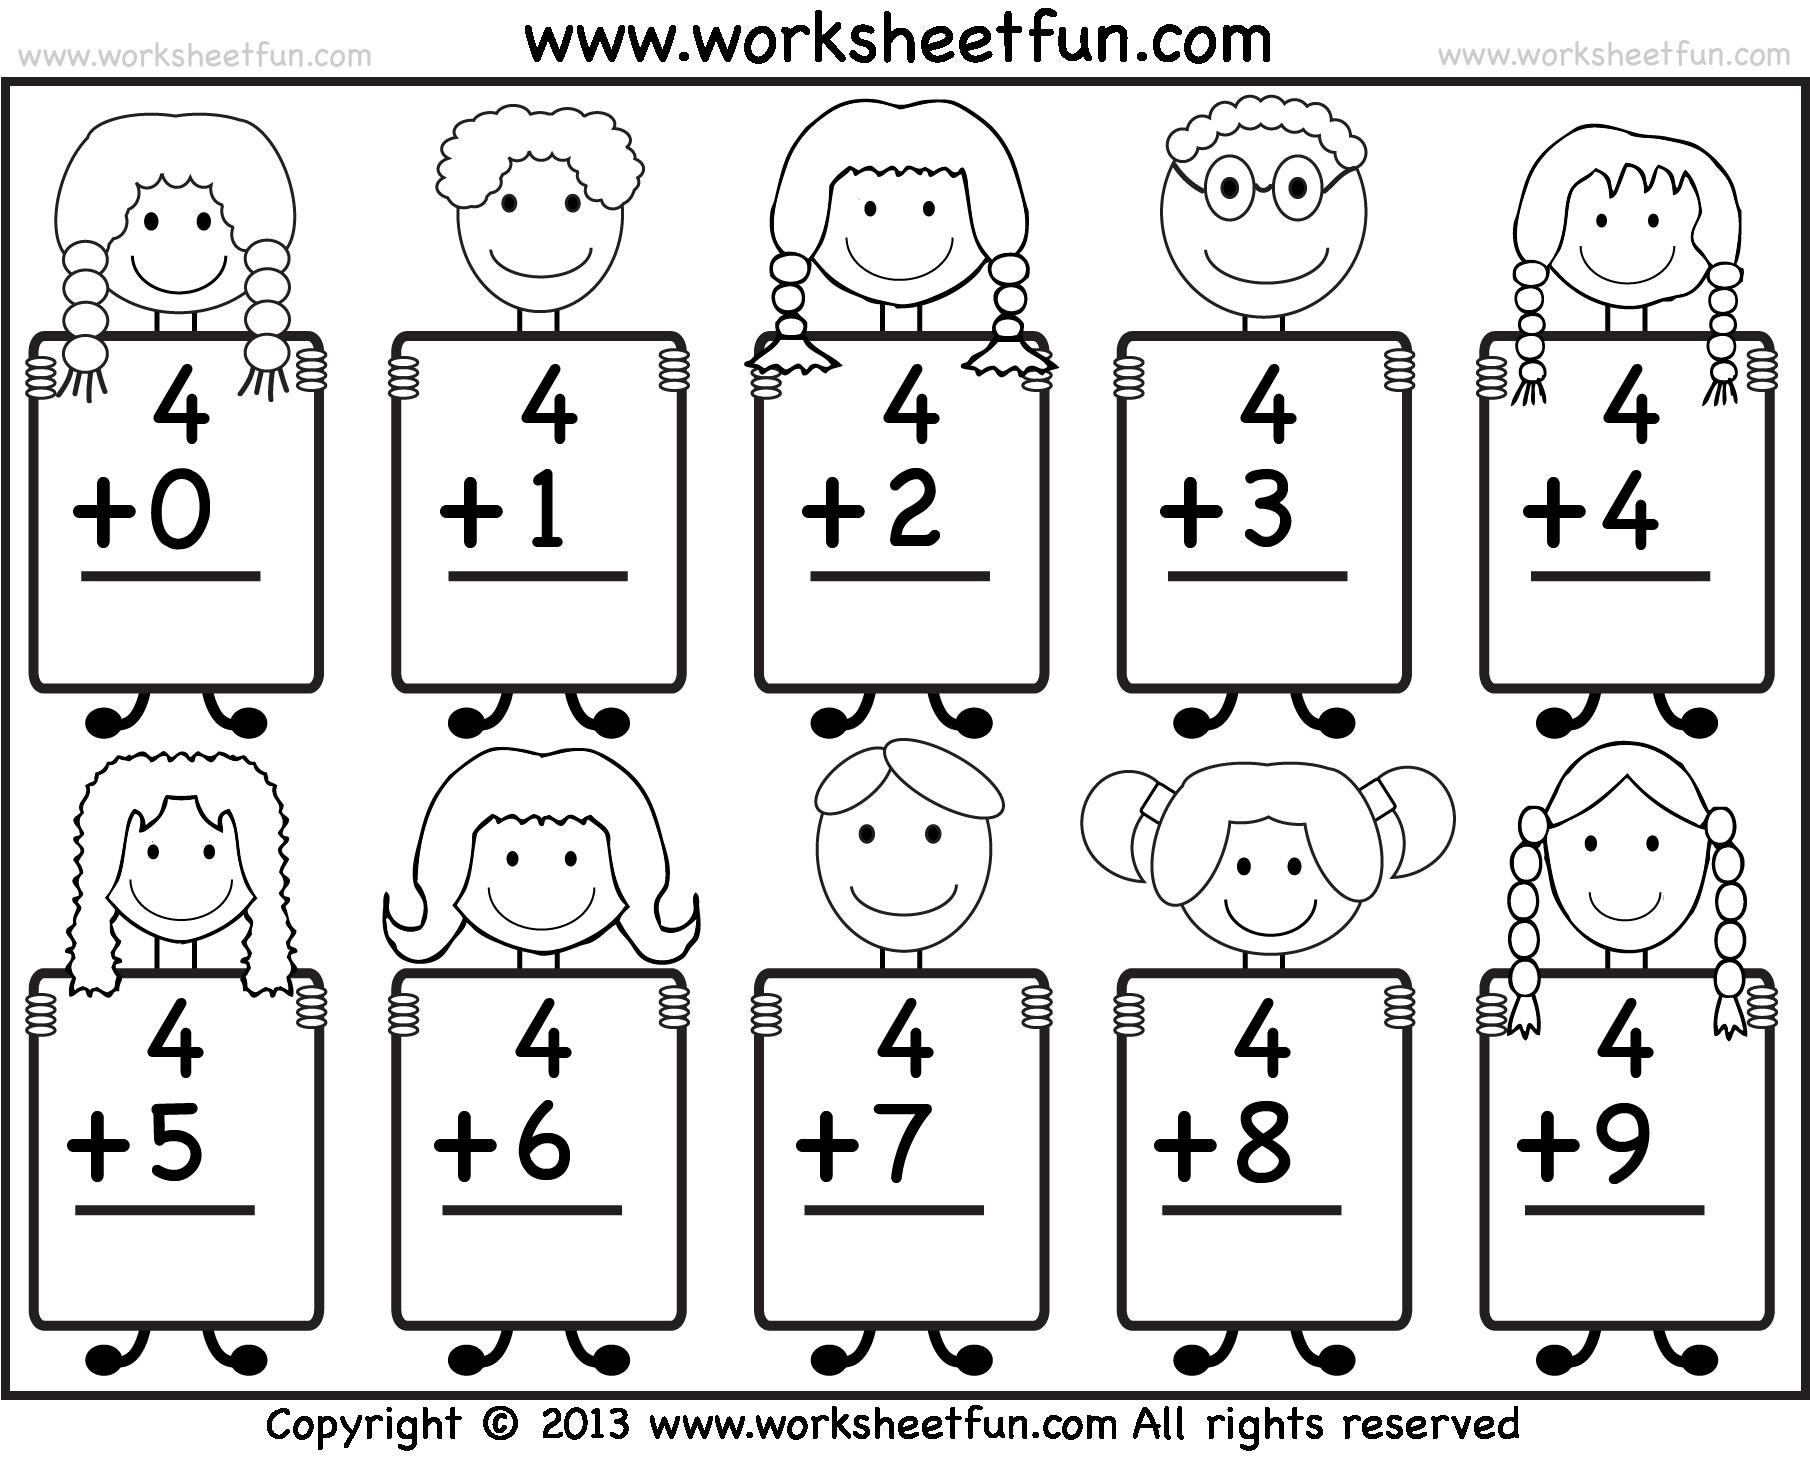 Worksheets K Math Worksheets free printable math worksheets for kindergarten addition 1 png kindergarten